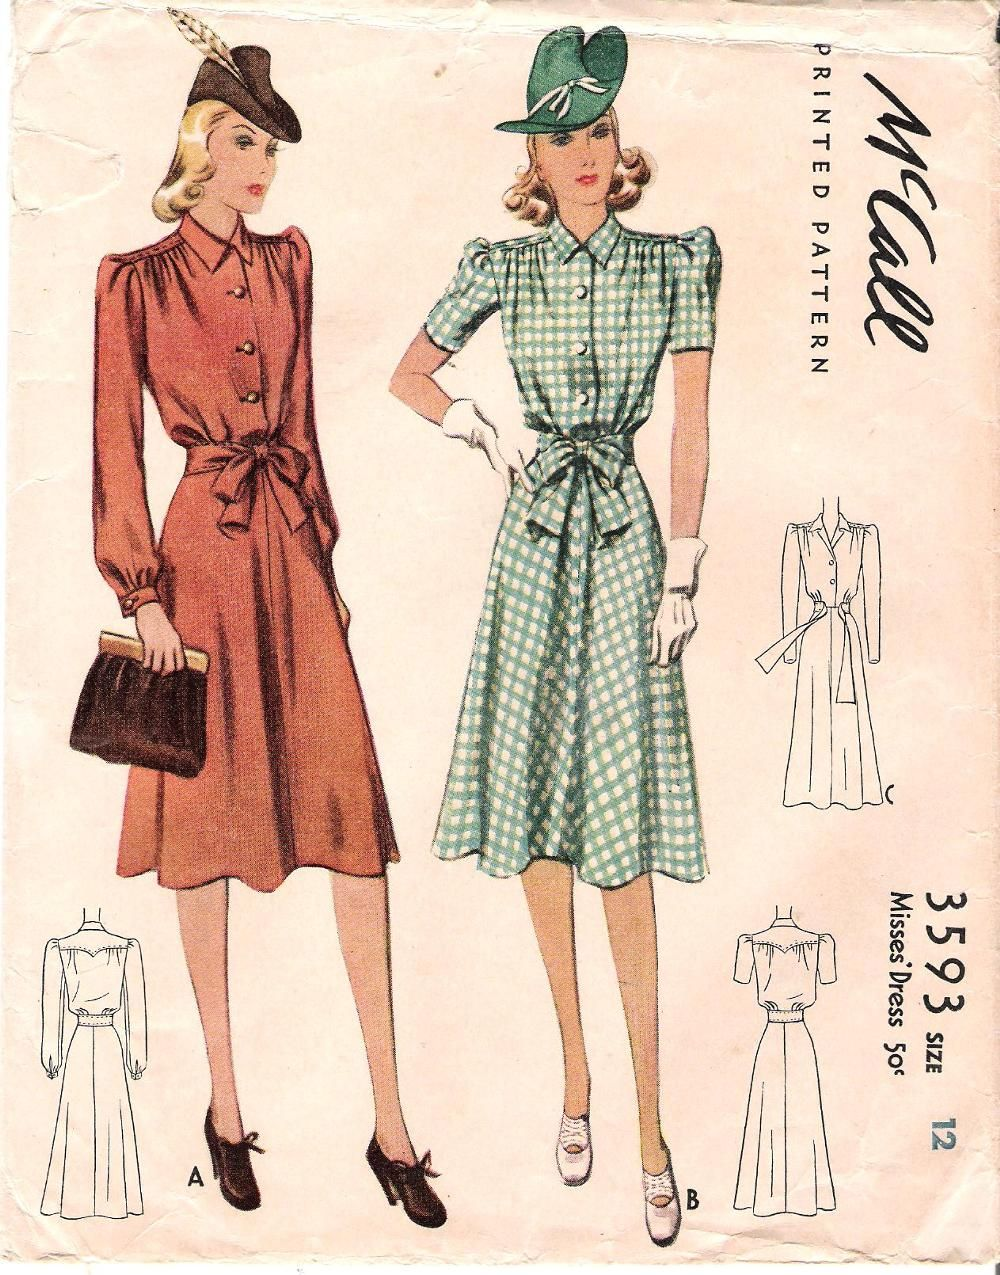 New photos on this wiki - Vintage Sewing Patterns, M3593size12,1940 ...